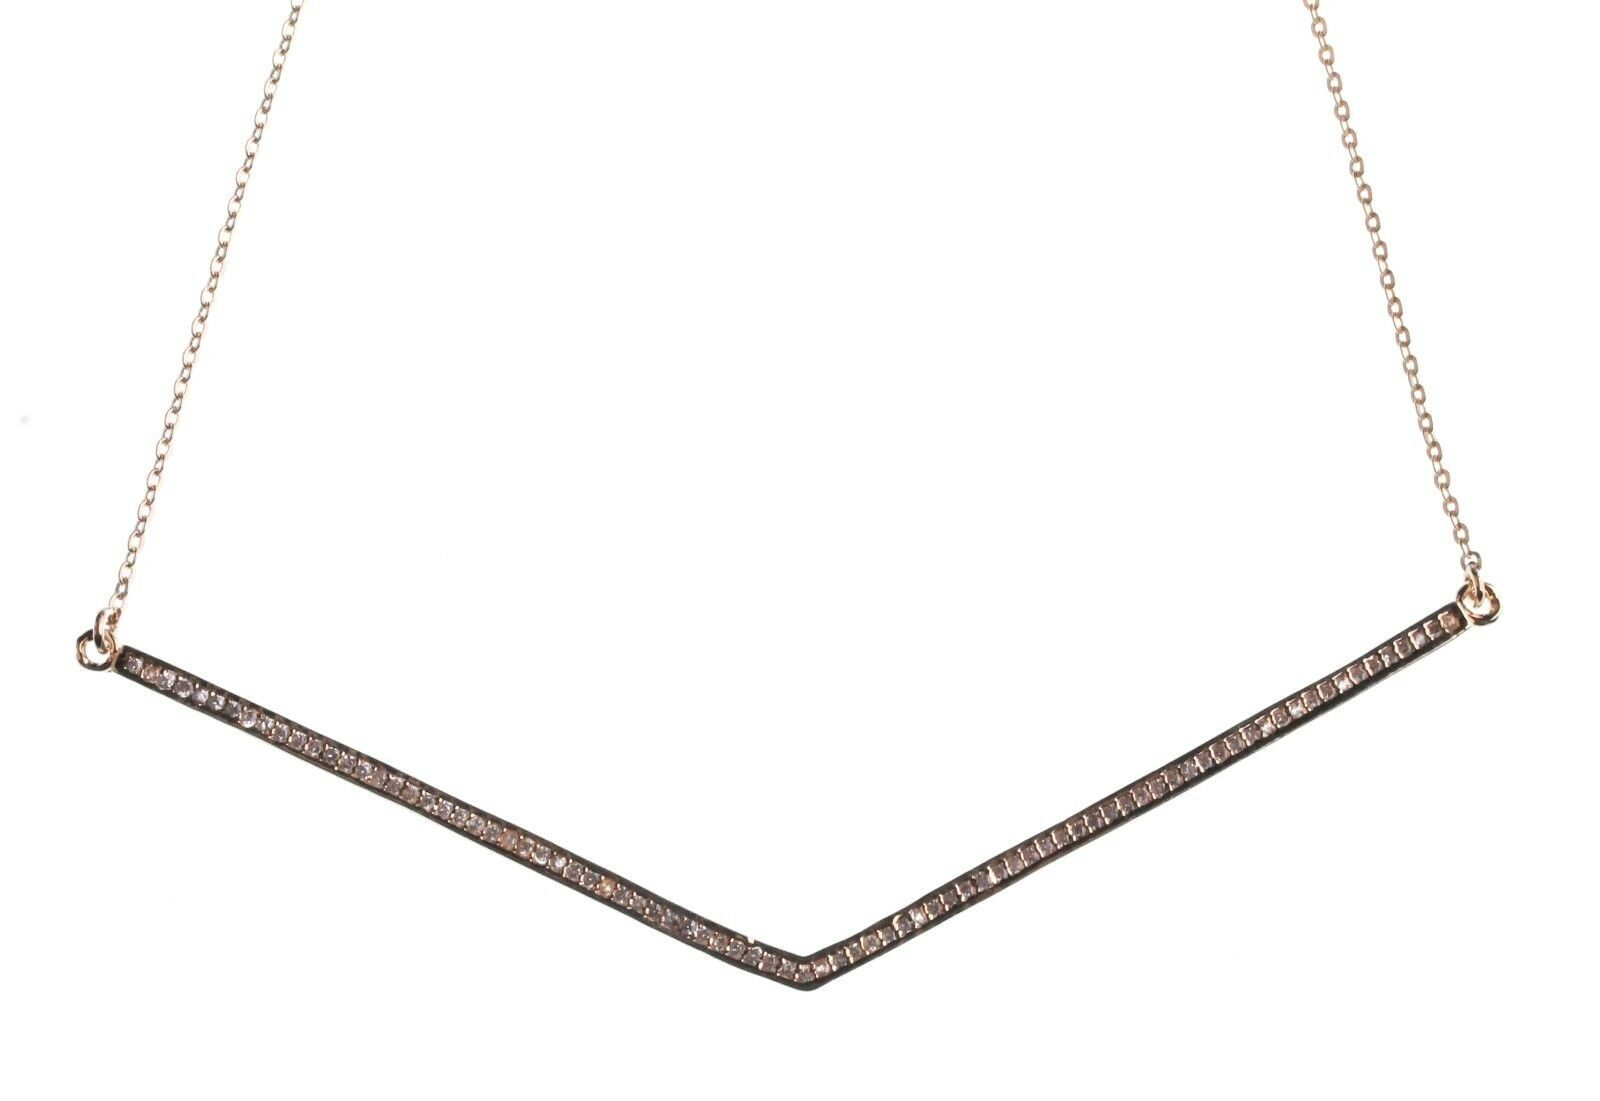 NEW Edison 14K Gold-Plated Pave Cubic Zirconia Crystal Chevron V-Bar Necklace